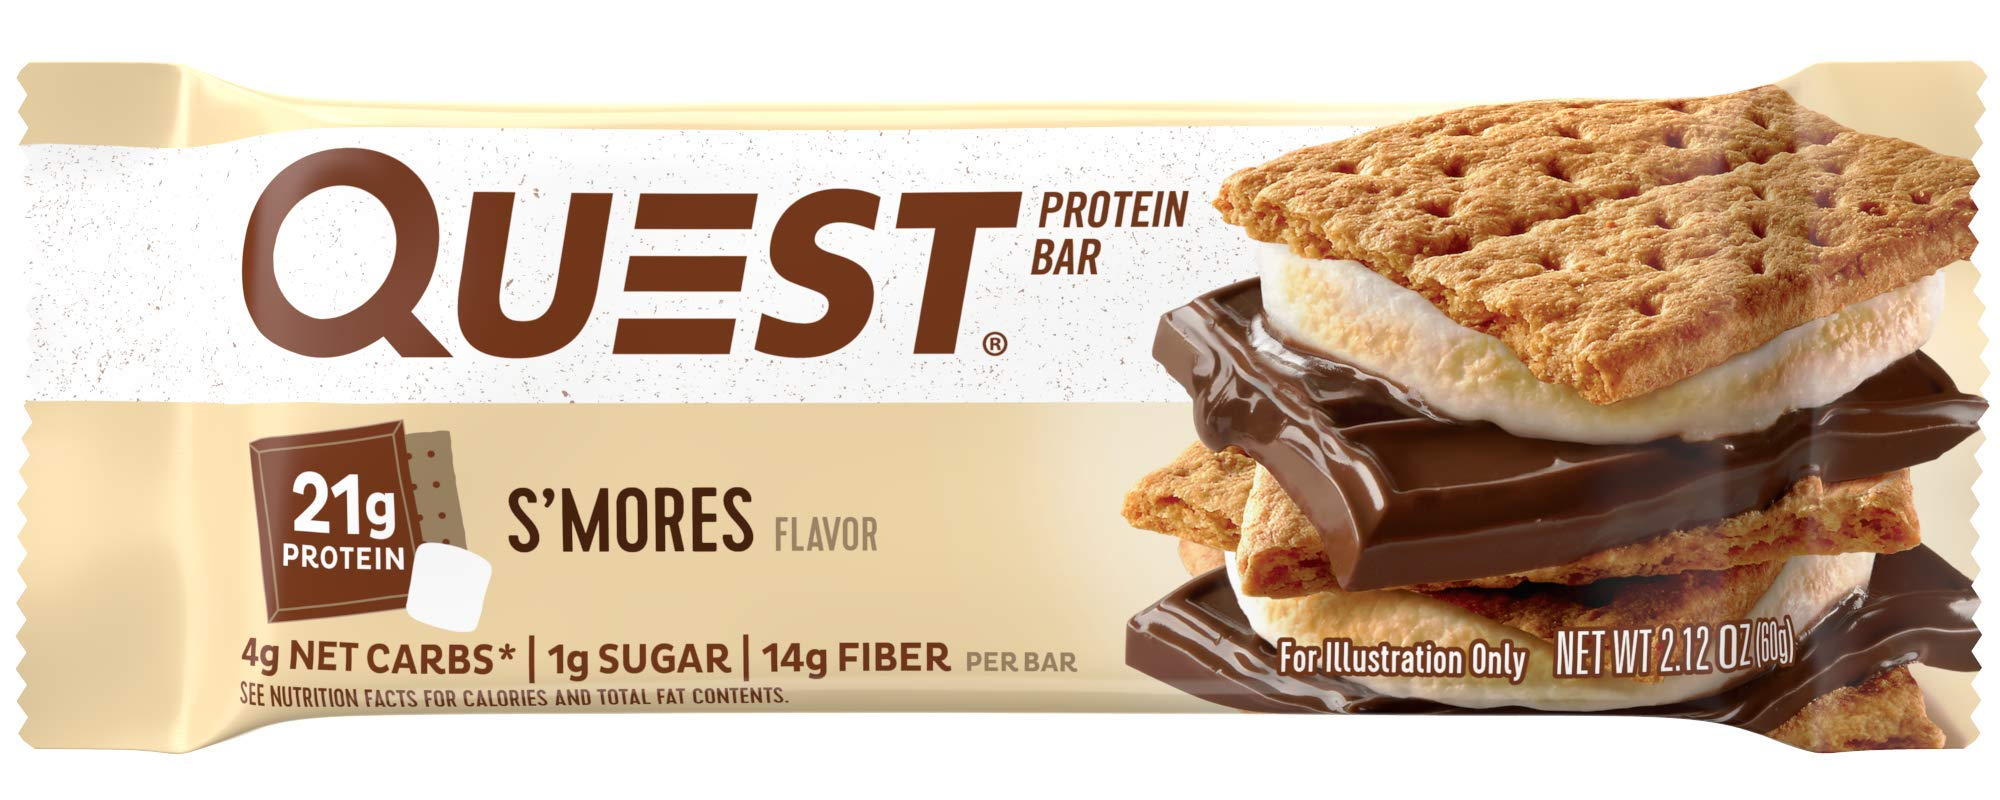 Quest Nutrition Protein Bar, S,mores, 20g Protein, 4g Net Carbs, 180 Cals, Low Carb, Gluten Free, Soy Free, 2.12oz Bar, 12 Count by Quest Nutrition